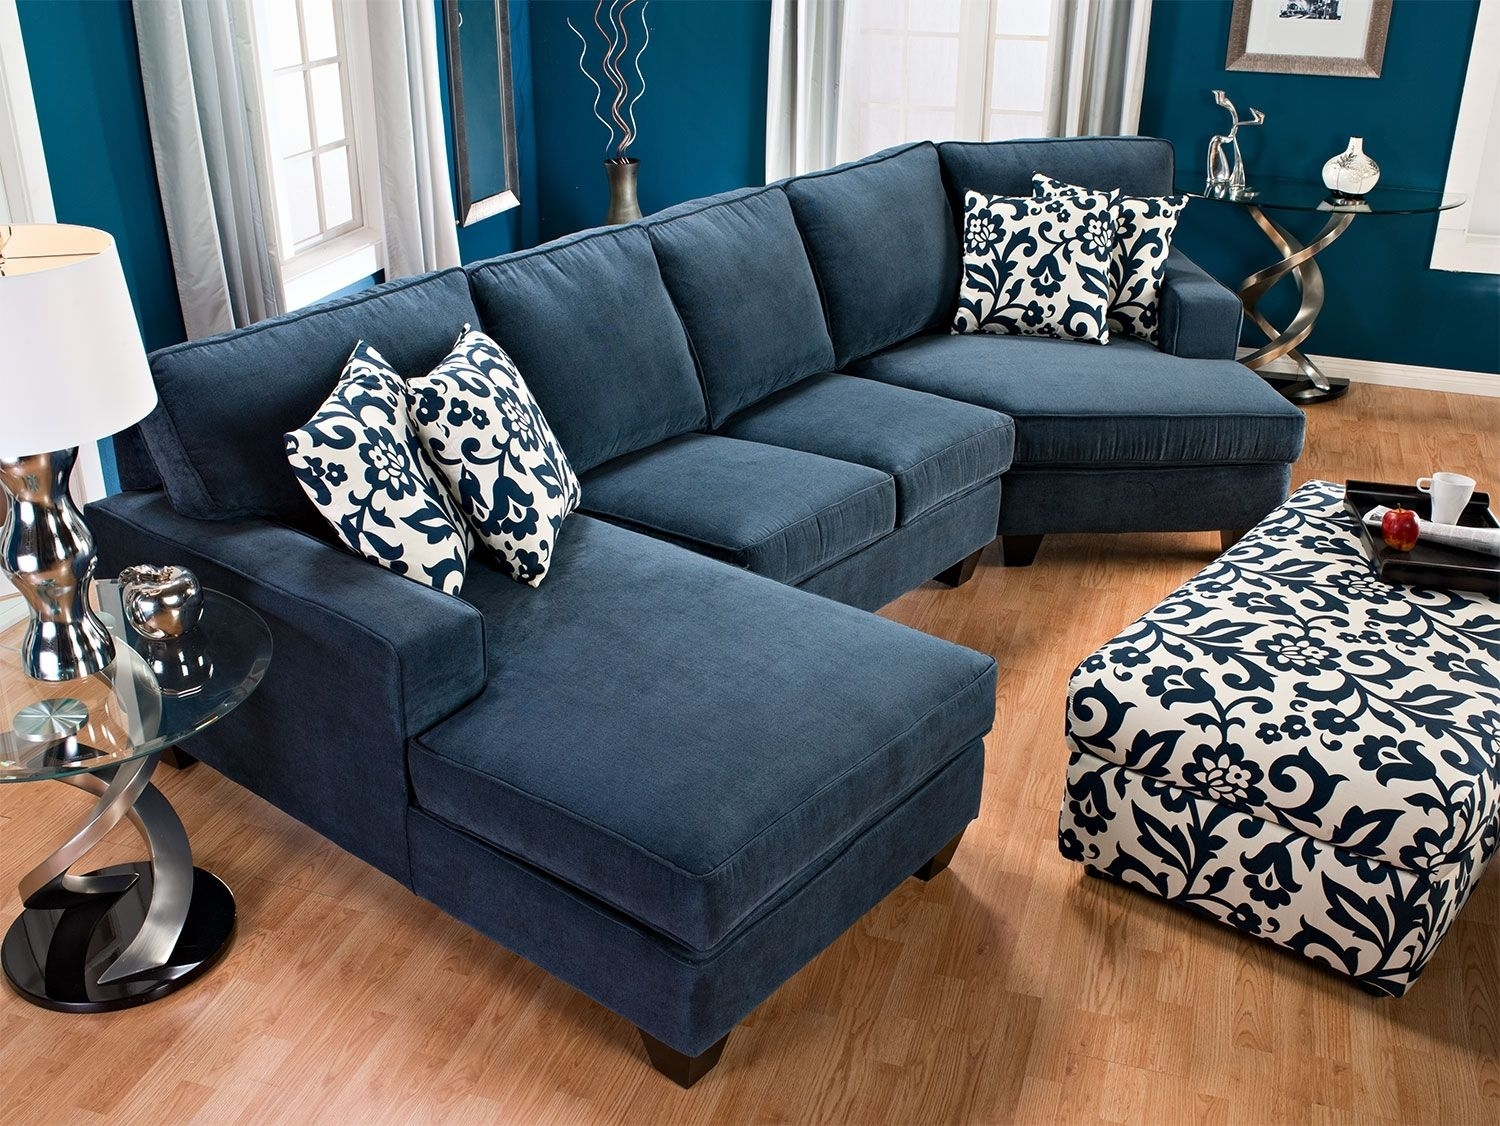 The Exact Couch We Want (Image 10 of 10)